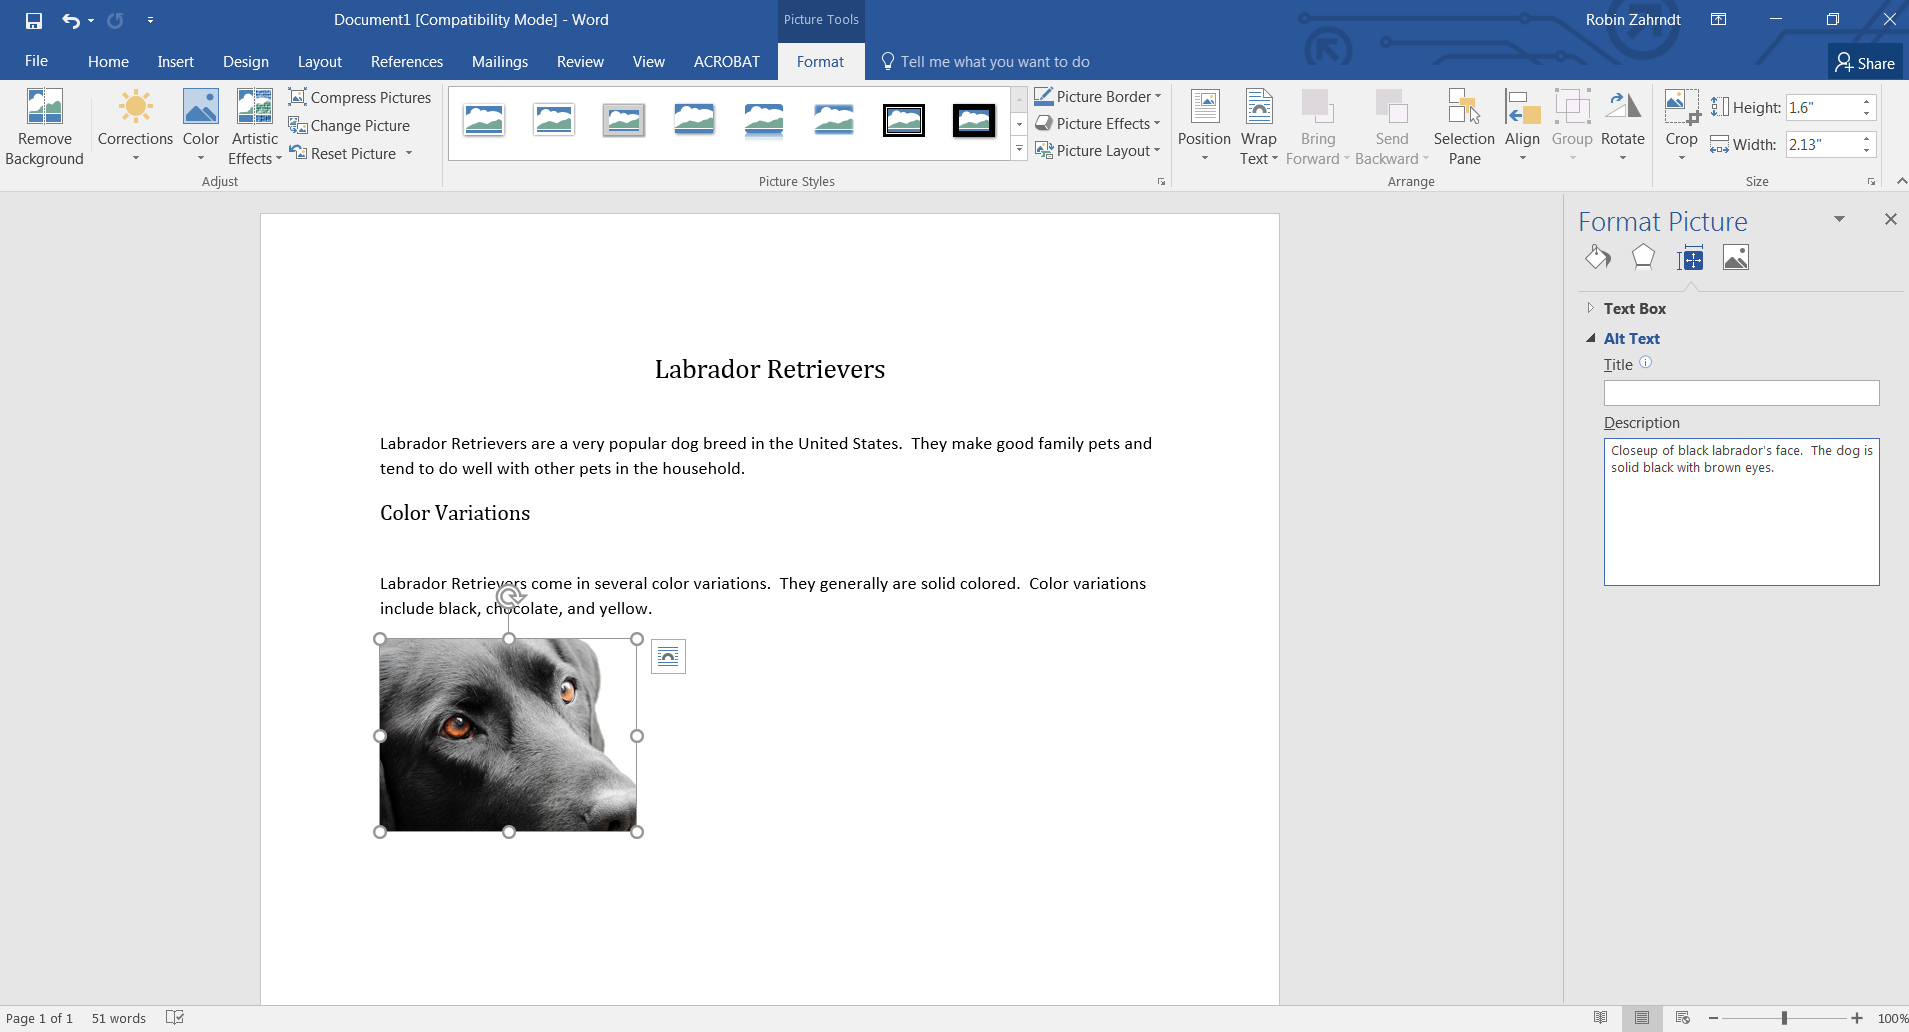 Screenshot of a Microsft Word document about Labrador Retrievers. In the document, the author has written alternative text for an image of a Labrador Retriever.